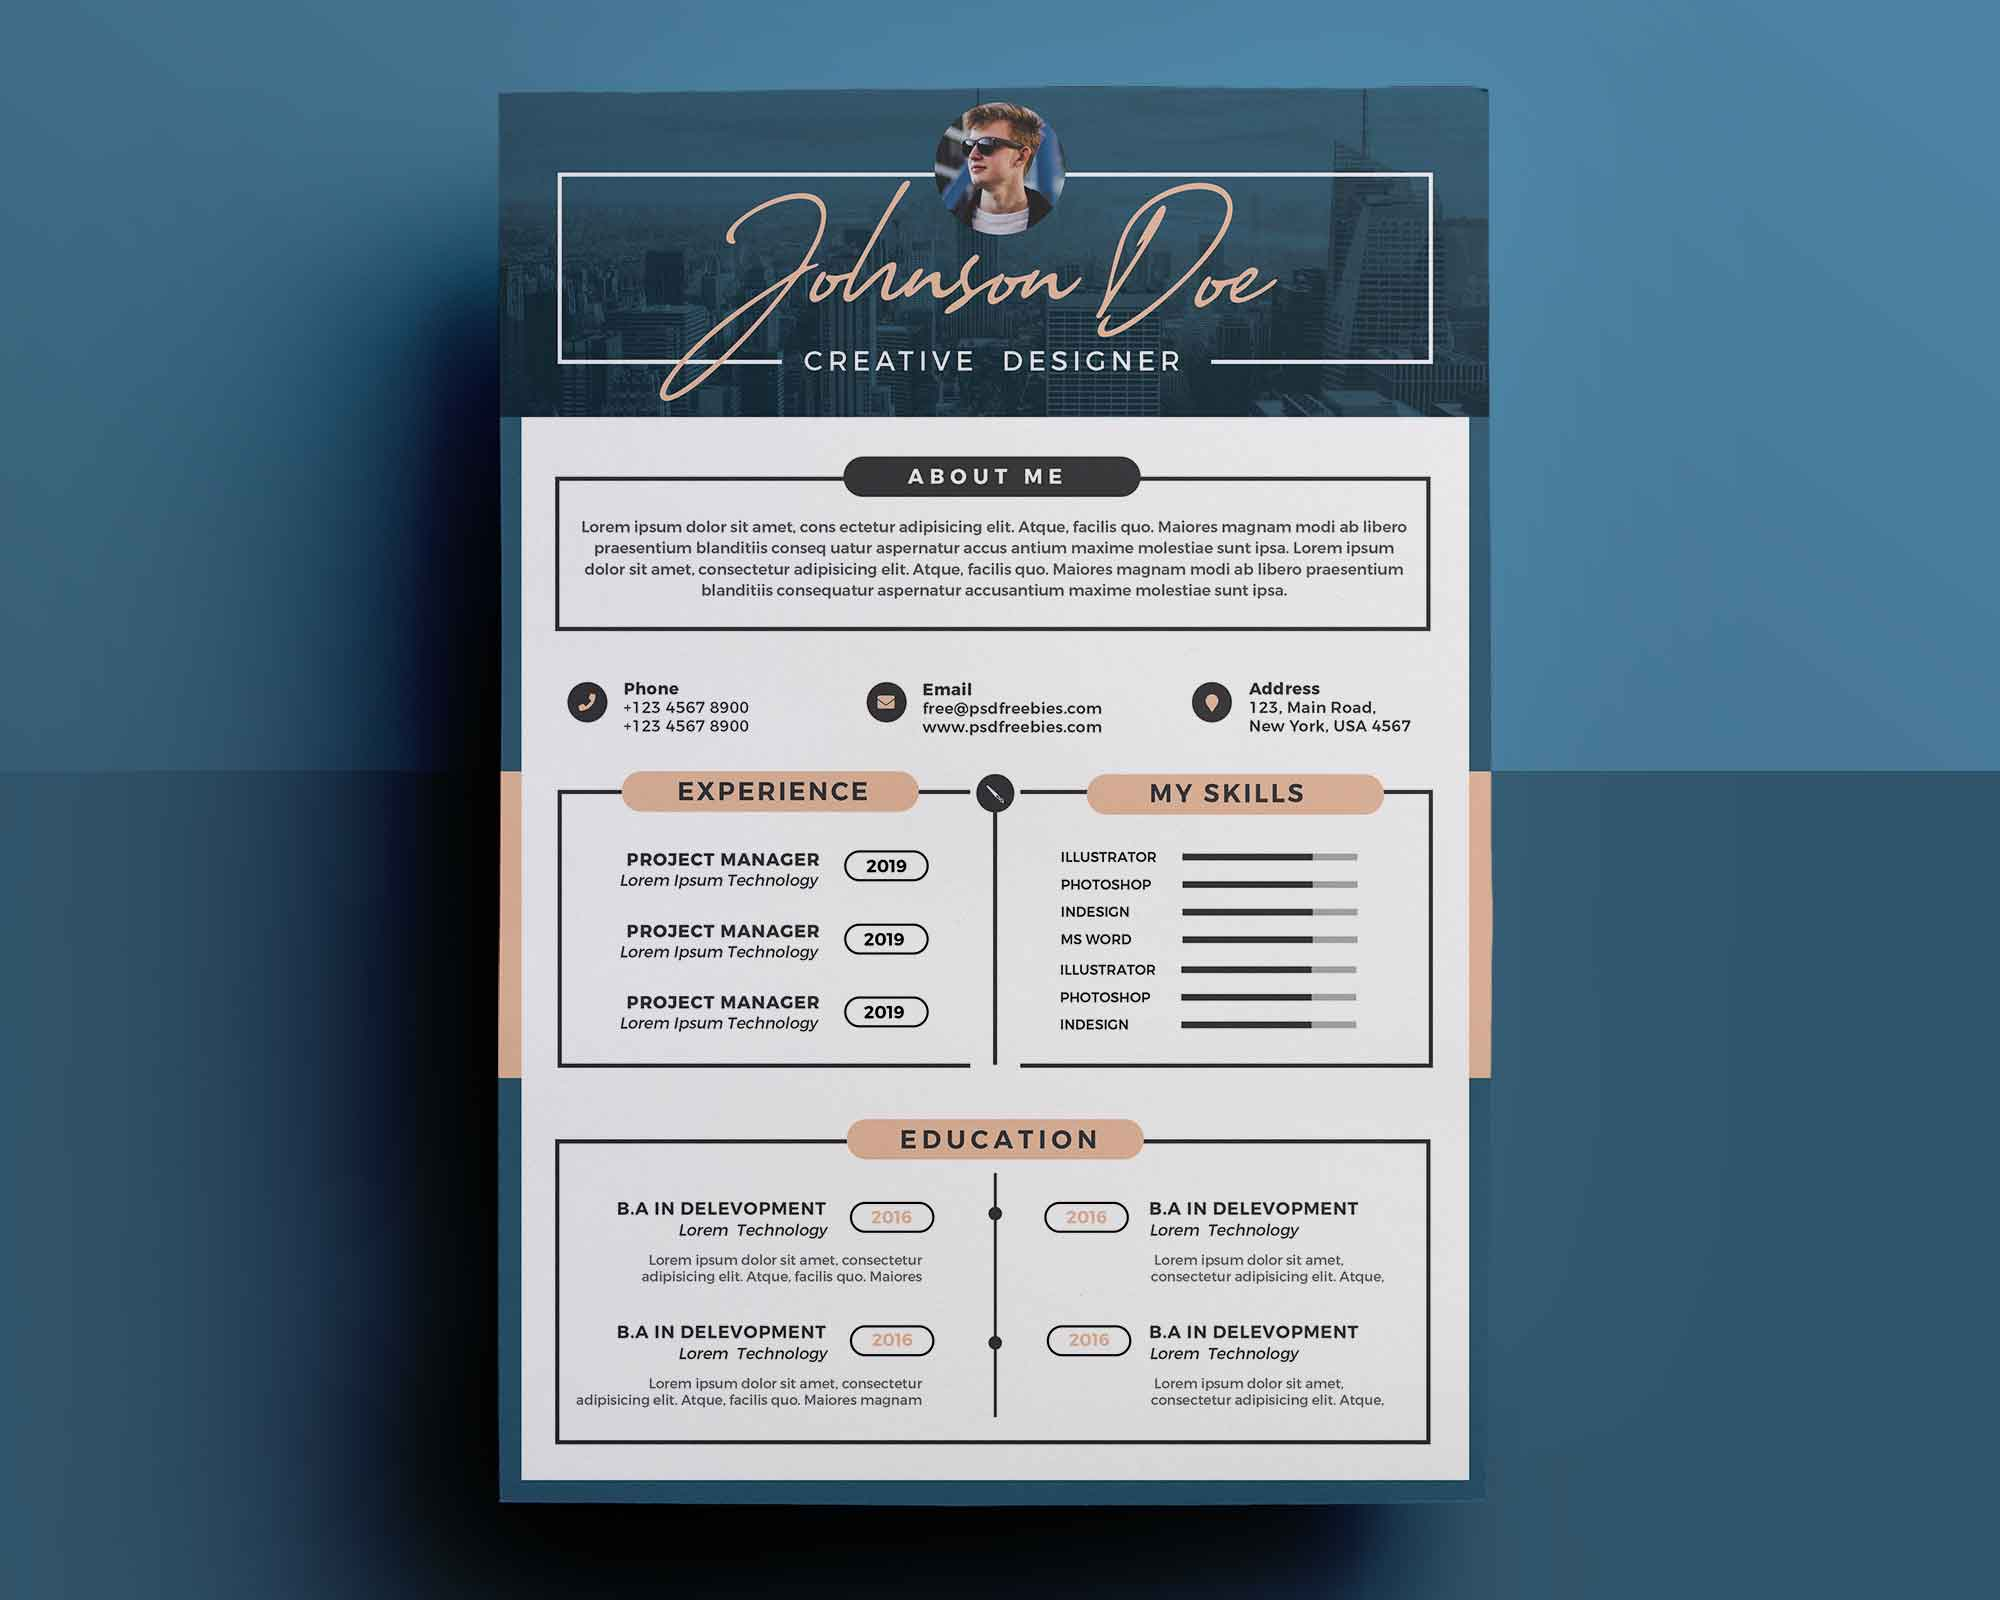 free professional resume template corporate new graduate rn sample cuddle summary for Resume Corporate Resume Template Free